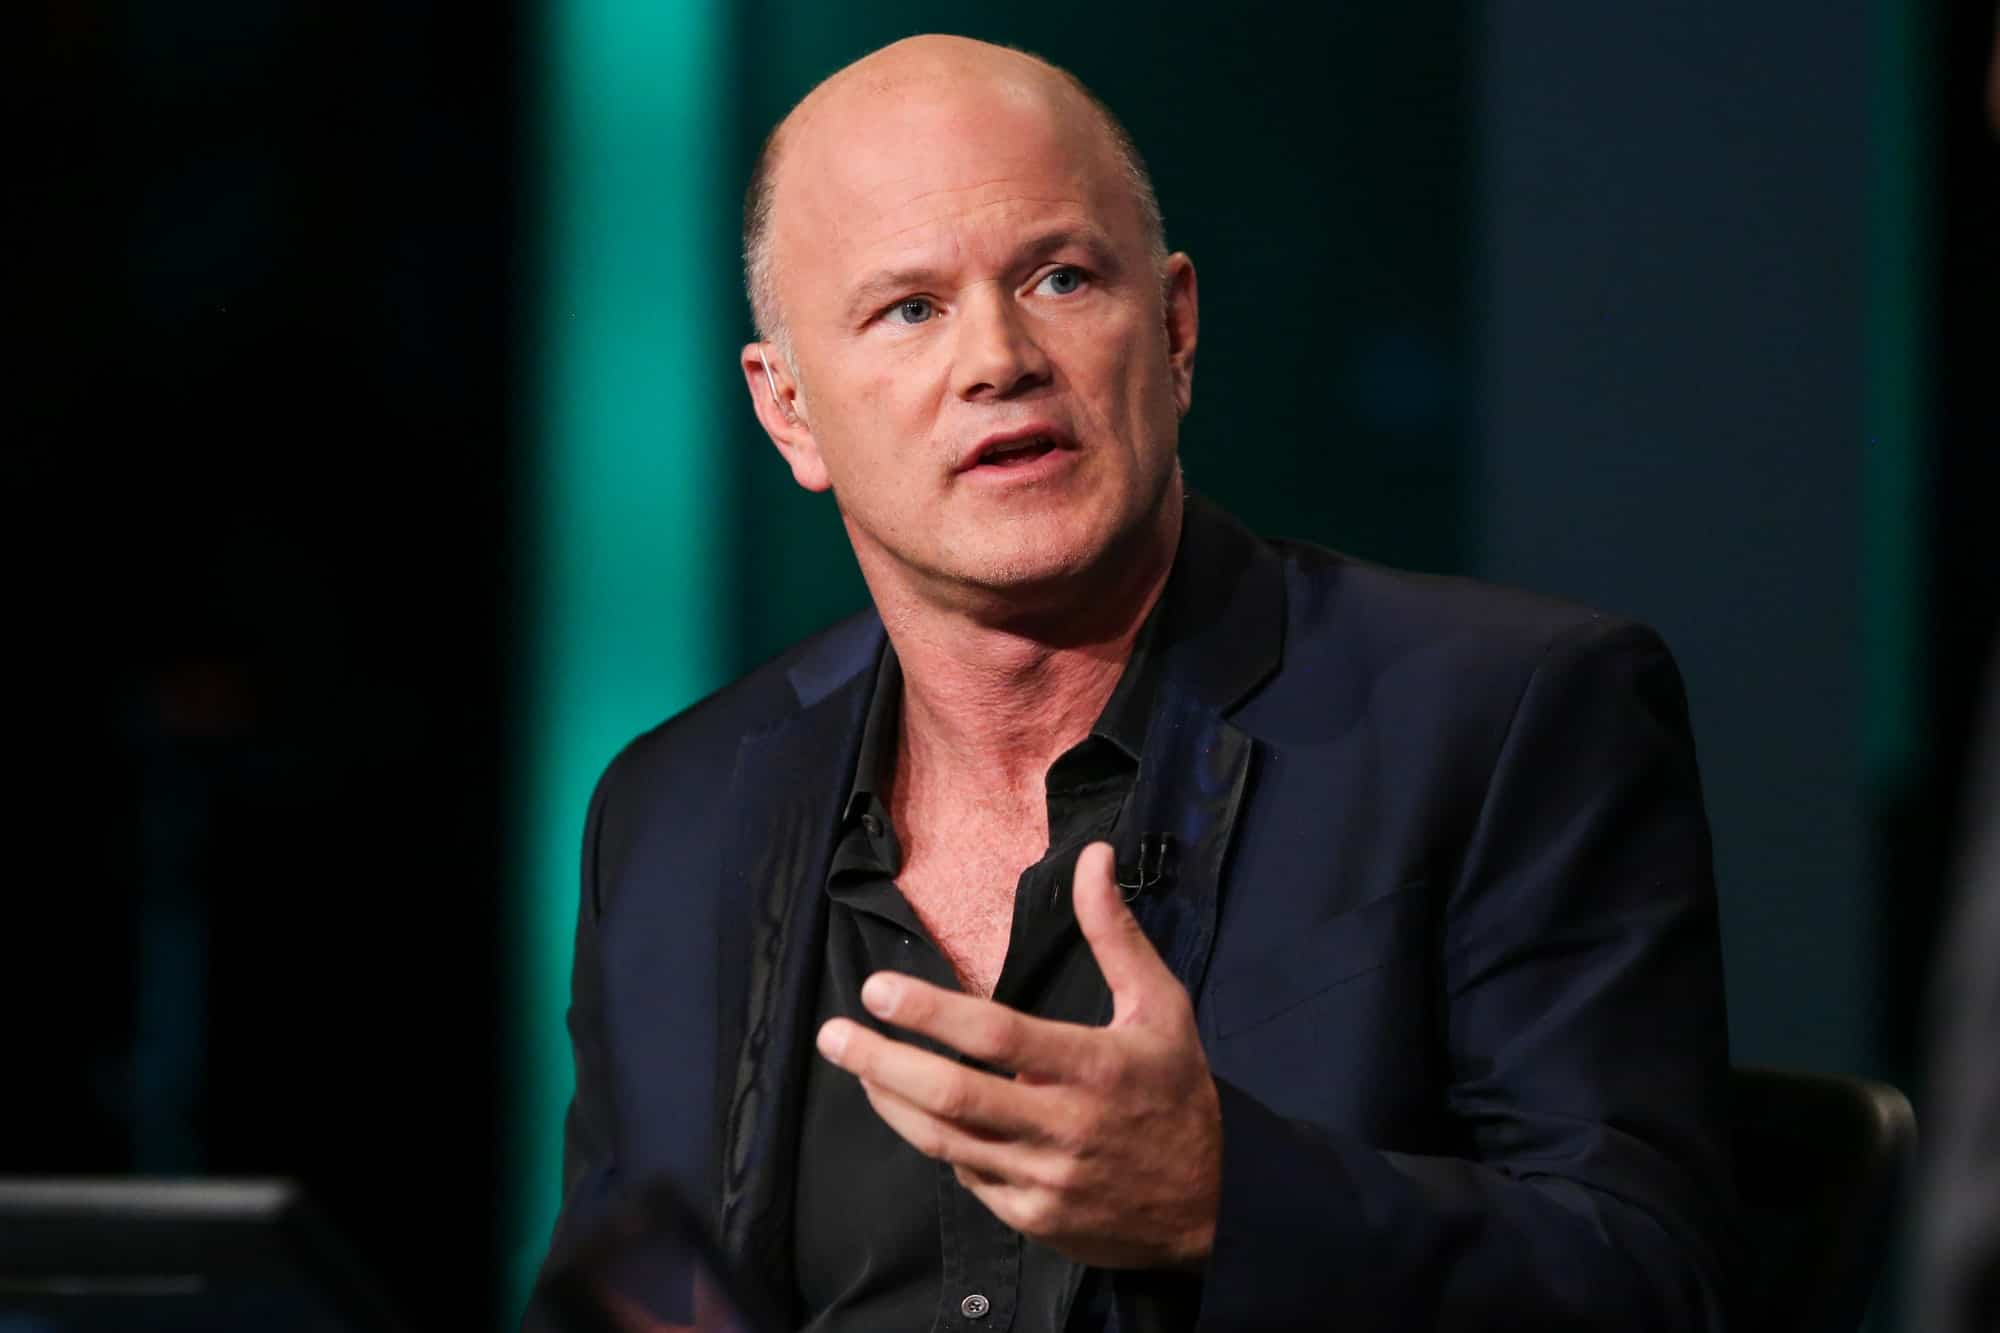 Michael Novogratz of Galaxy Investment Partners